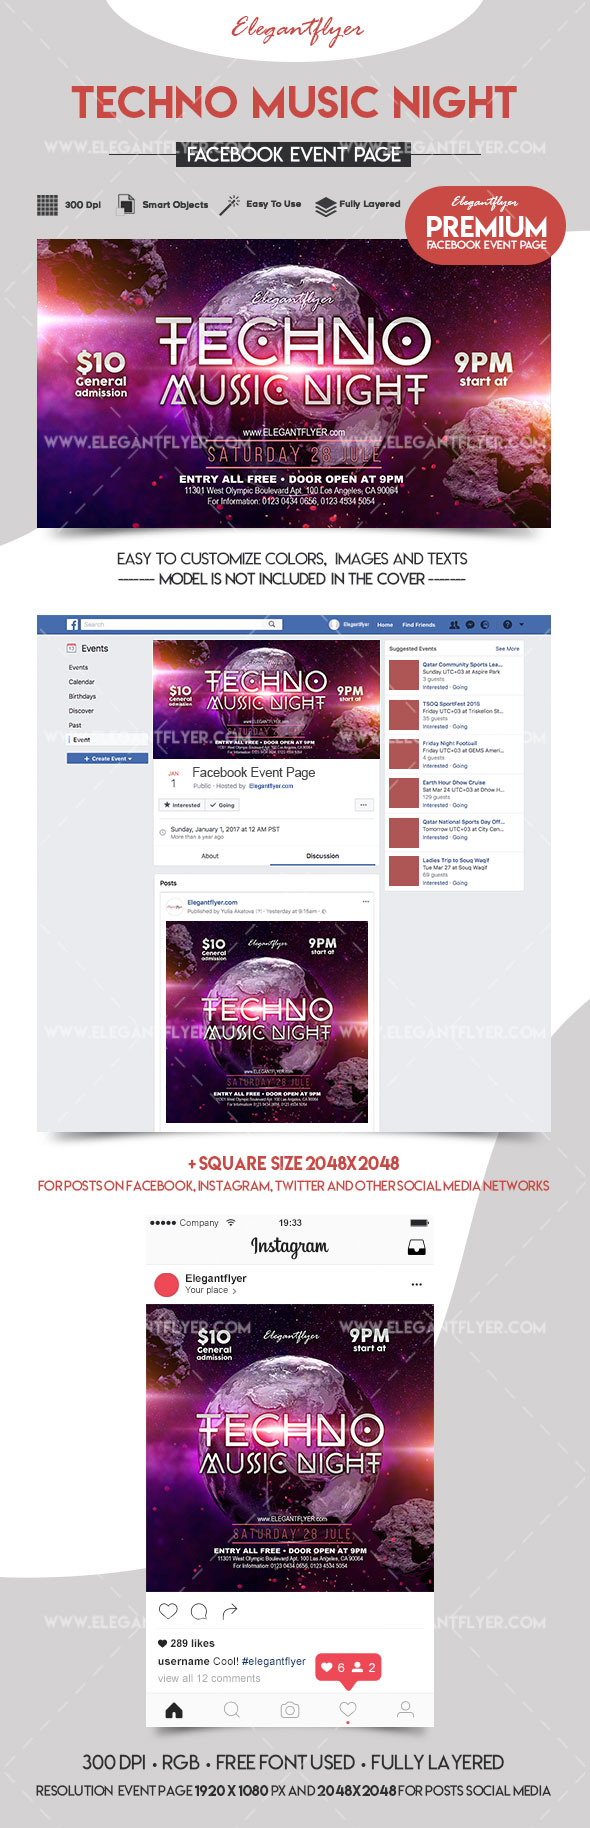 Techno Music Night – Premium Facebook Event Page